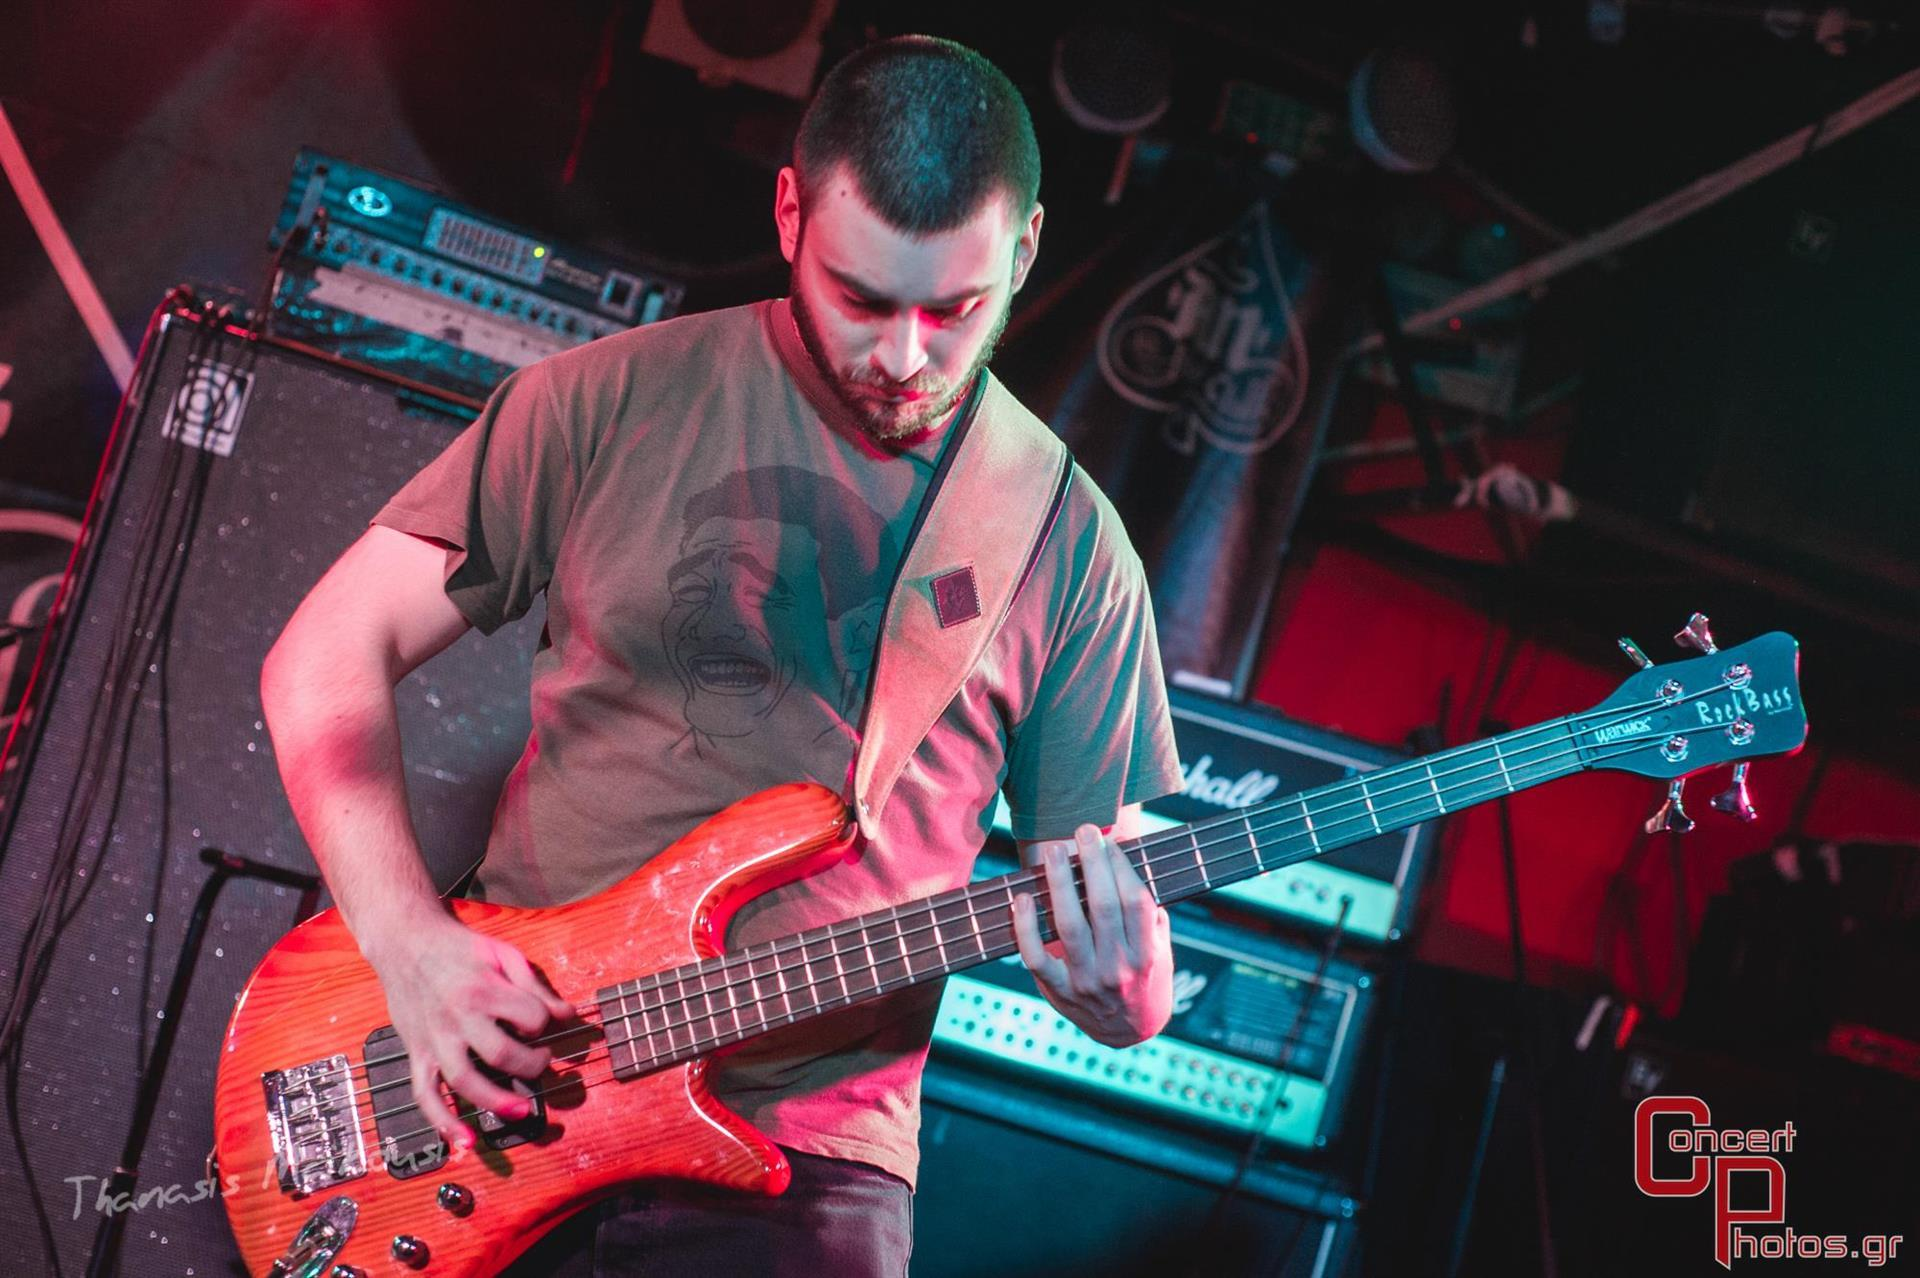 Battle Of The Bands Athens - Leg 4-test photographer:  - Battle Of The Bands-20150208-231333